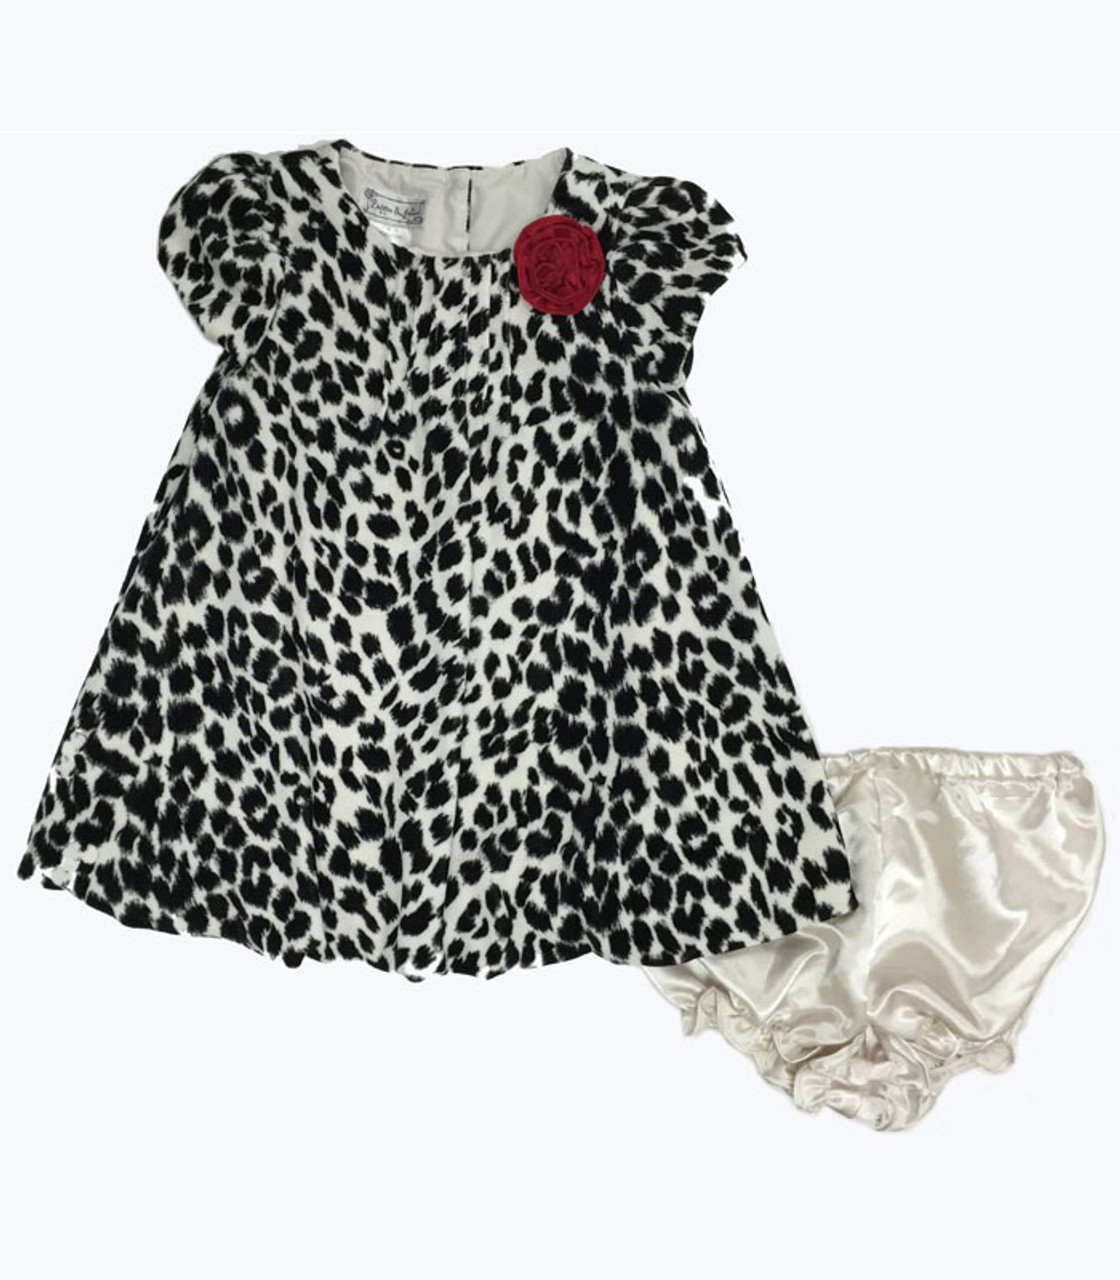 96e4273f74f69 Pippa and Julie Animal Print Dress | Berri Kids Boutique